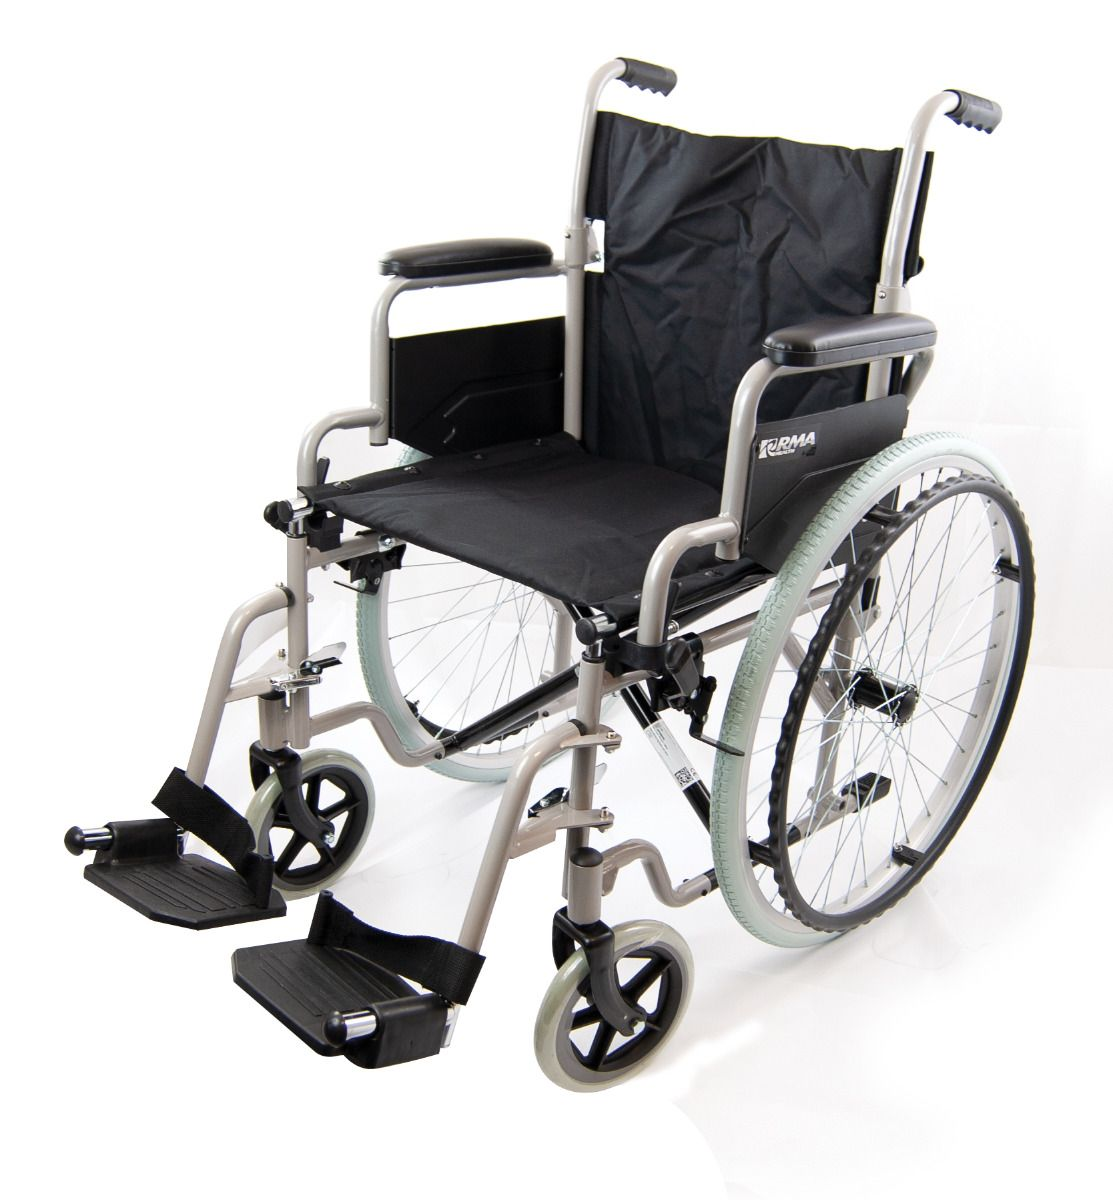 Roma Medical 1050 Self Propelled Wheelchair viewed from the side angle